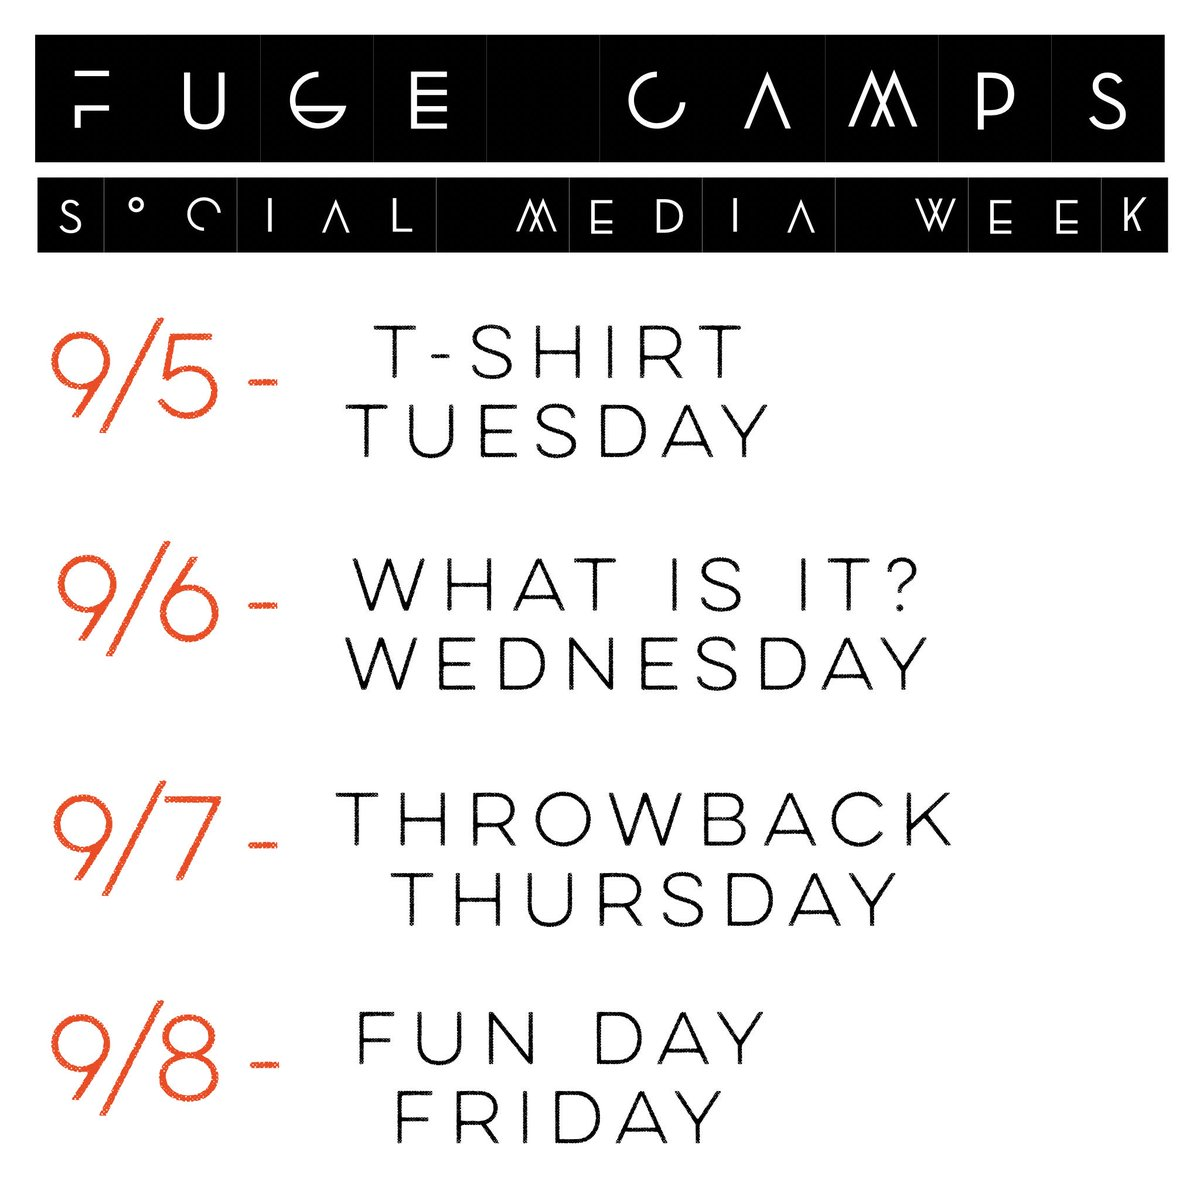 test Twitter Media - FUGE SOCIAL: Staff/students/adults invited! Prizes! Details to follow! Share all the fun and what the Lord has done! Party starts Tuesday! https://t.co/9h8CHpP0z1